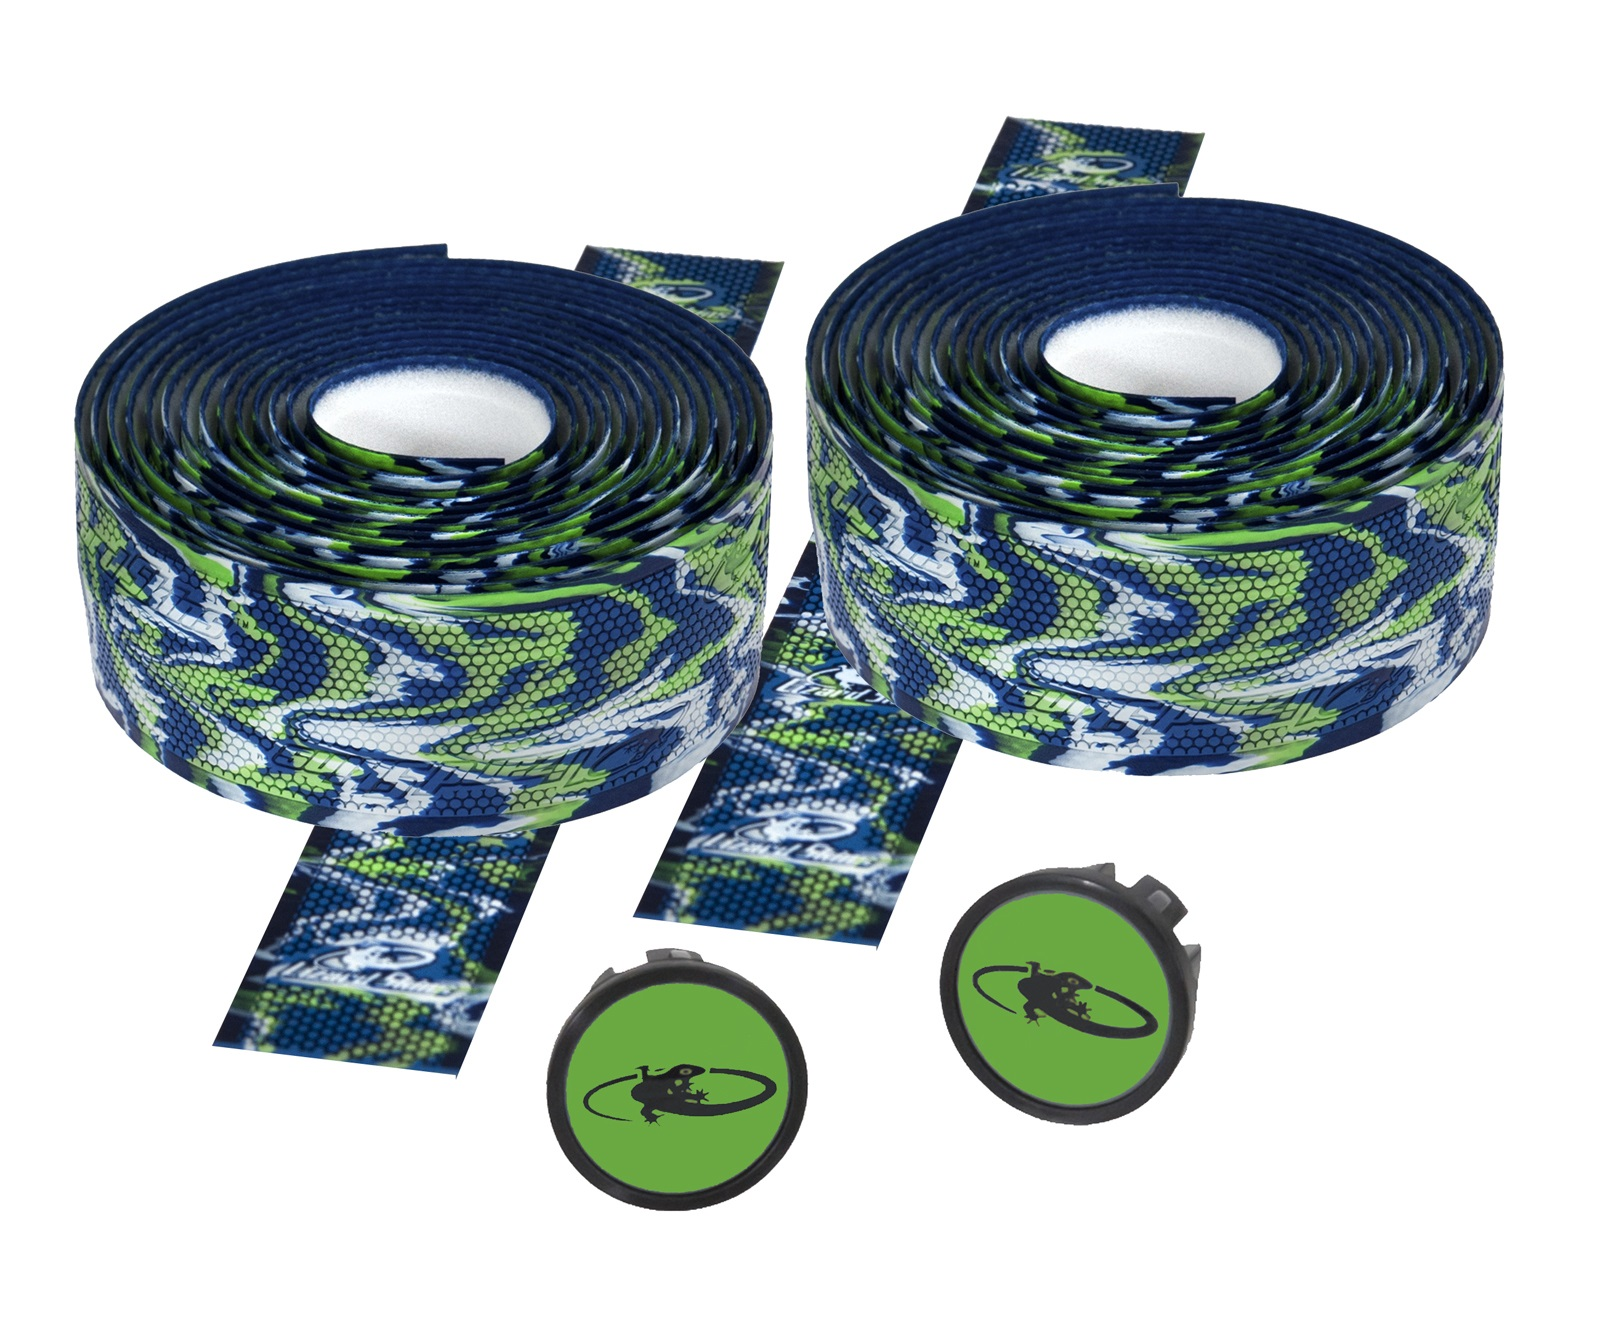 Lizardskins DSP 1.8 Handlebar Tape 1.8x208mm - Blue/Green